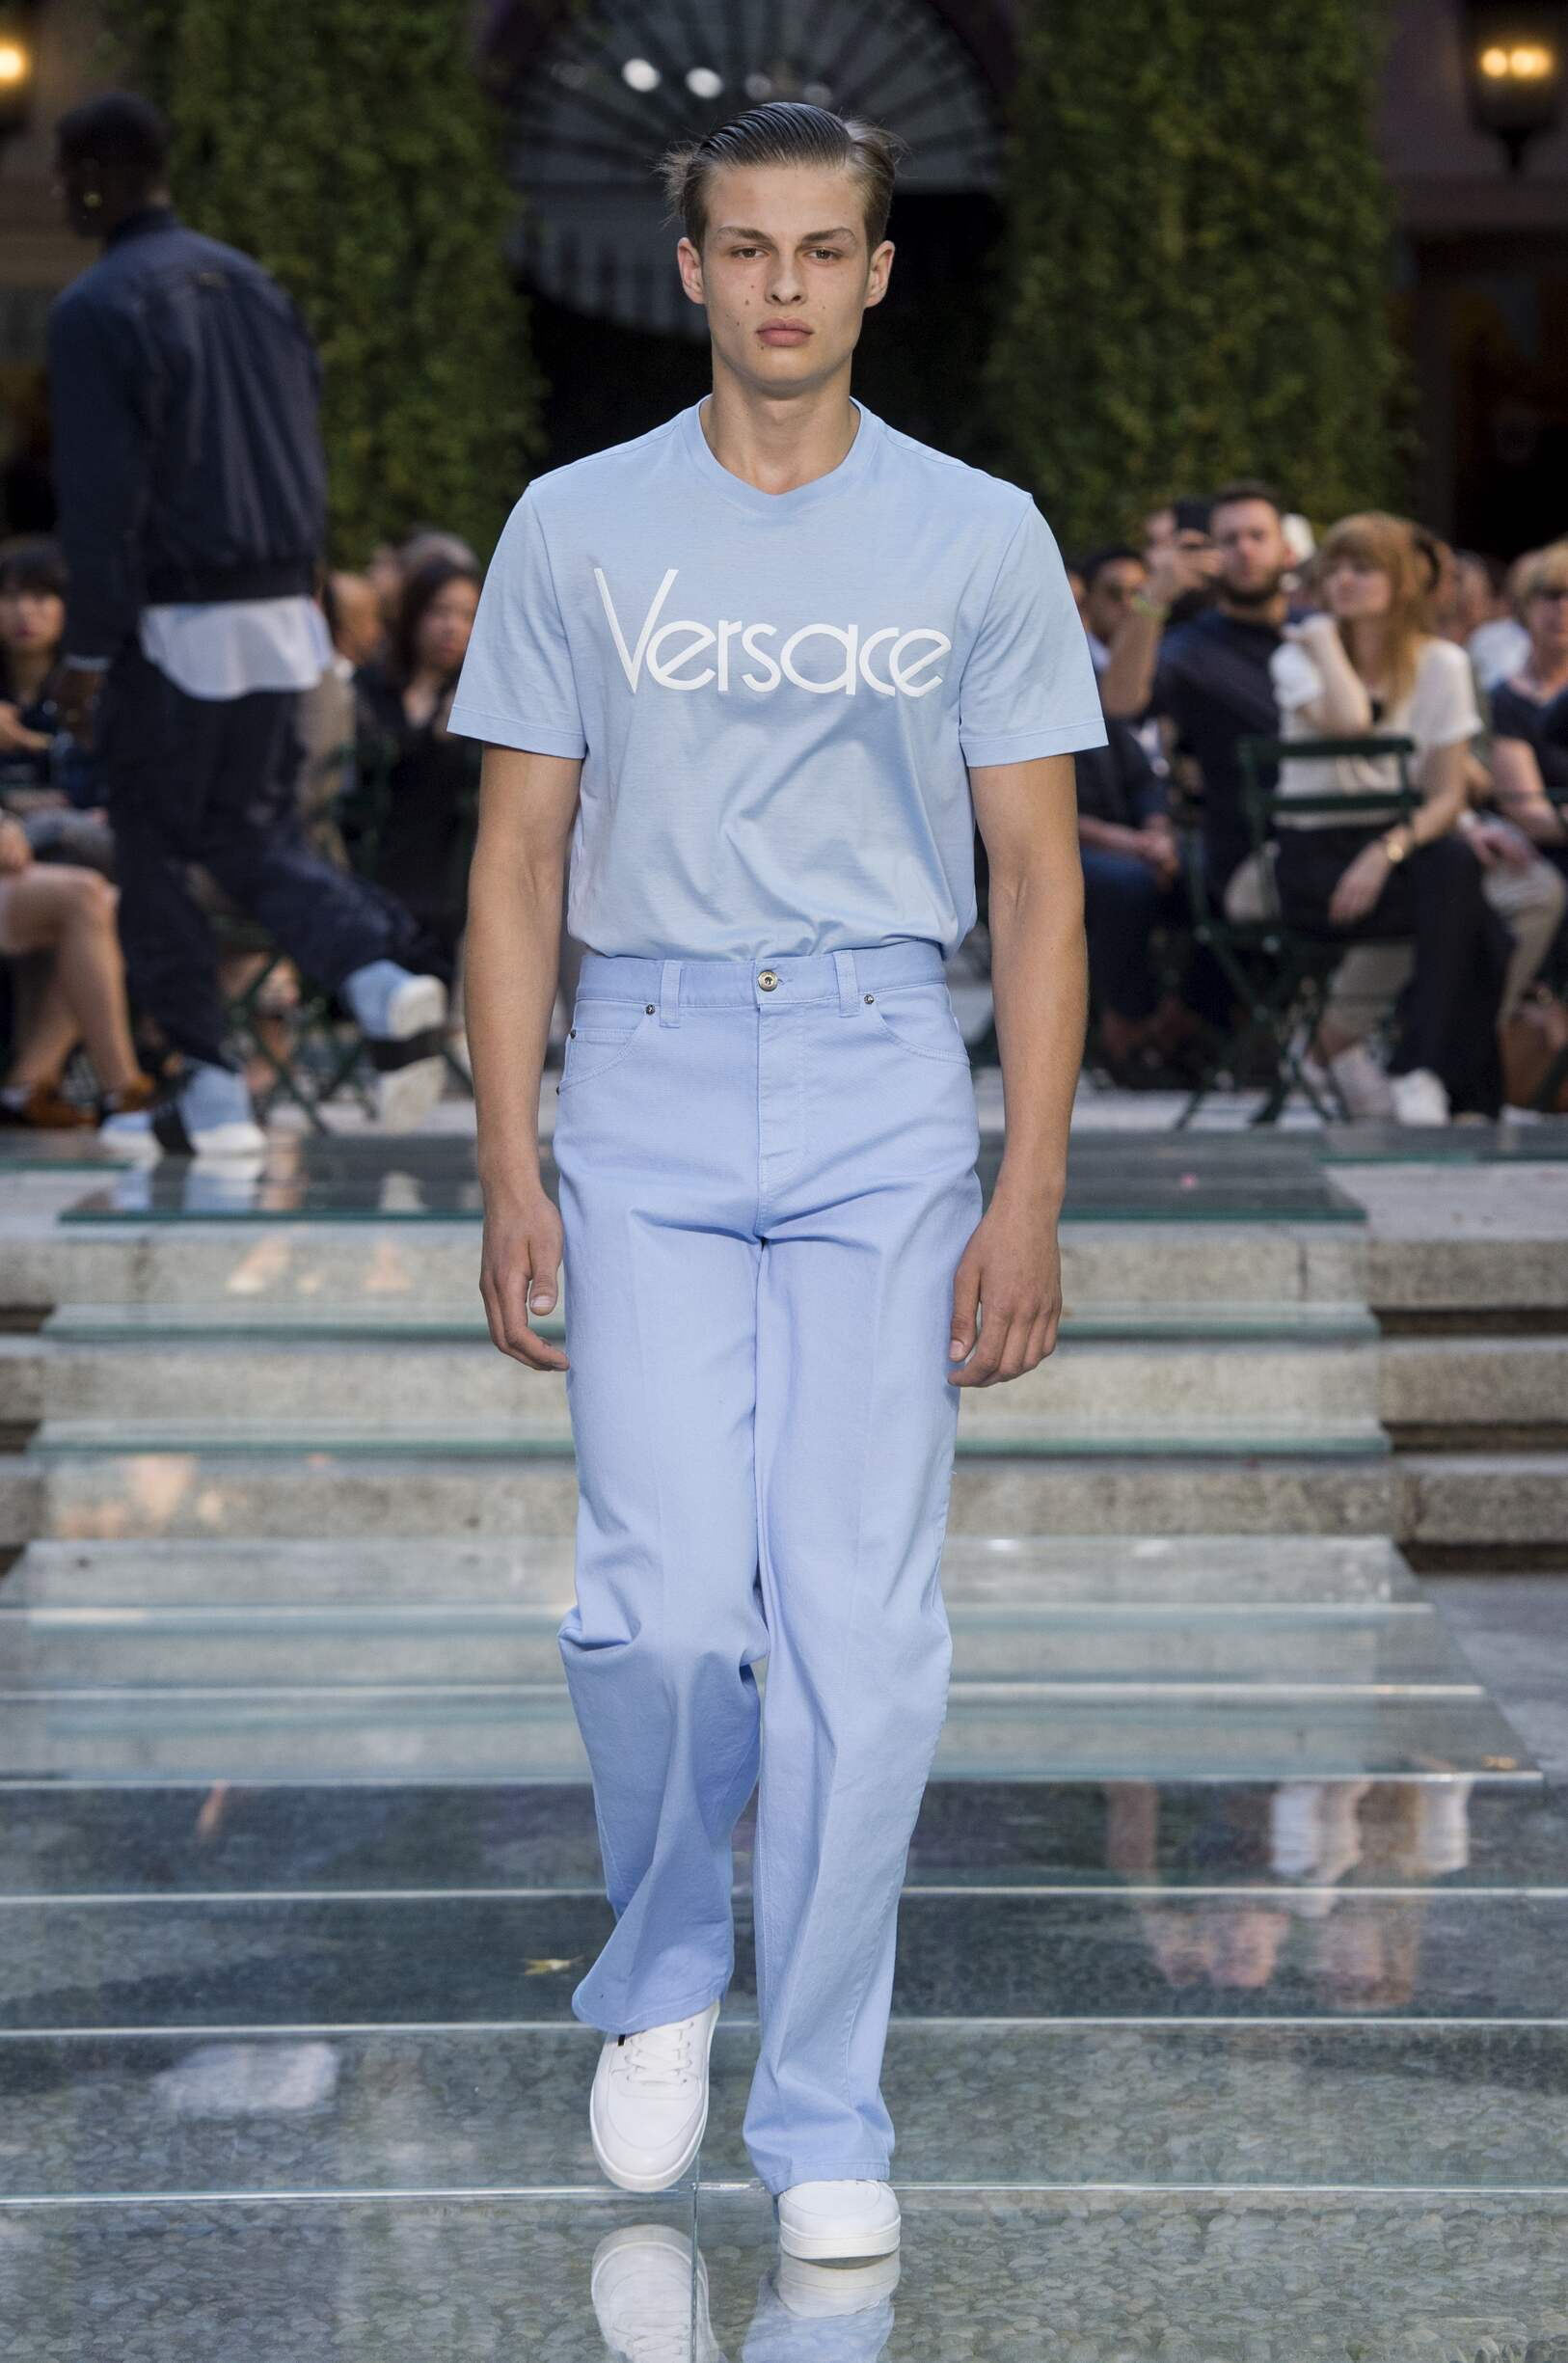 Versace Milan Fashion Week Menswear